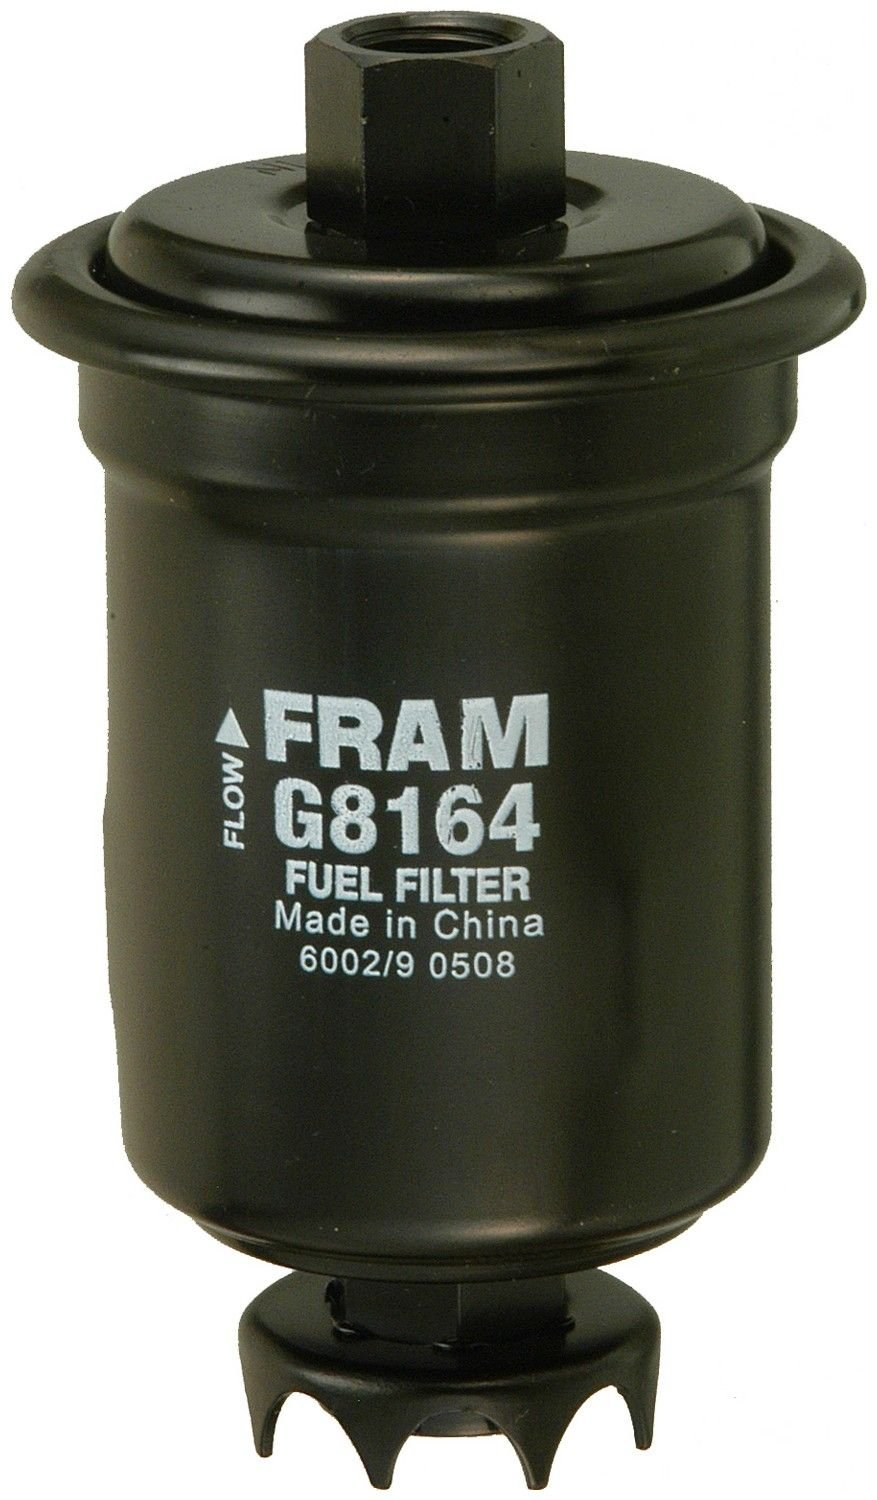 1998 Camry Fuel Filter Location Toyota Replacement Beck Arnley Fram Hastings 1983 G8164 In Line Universal